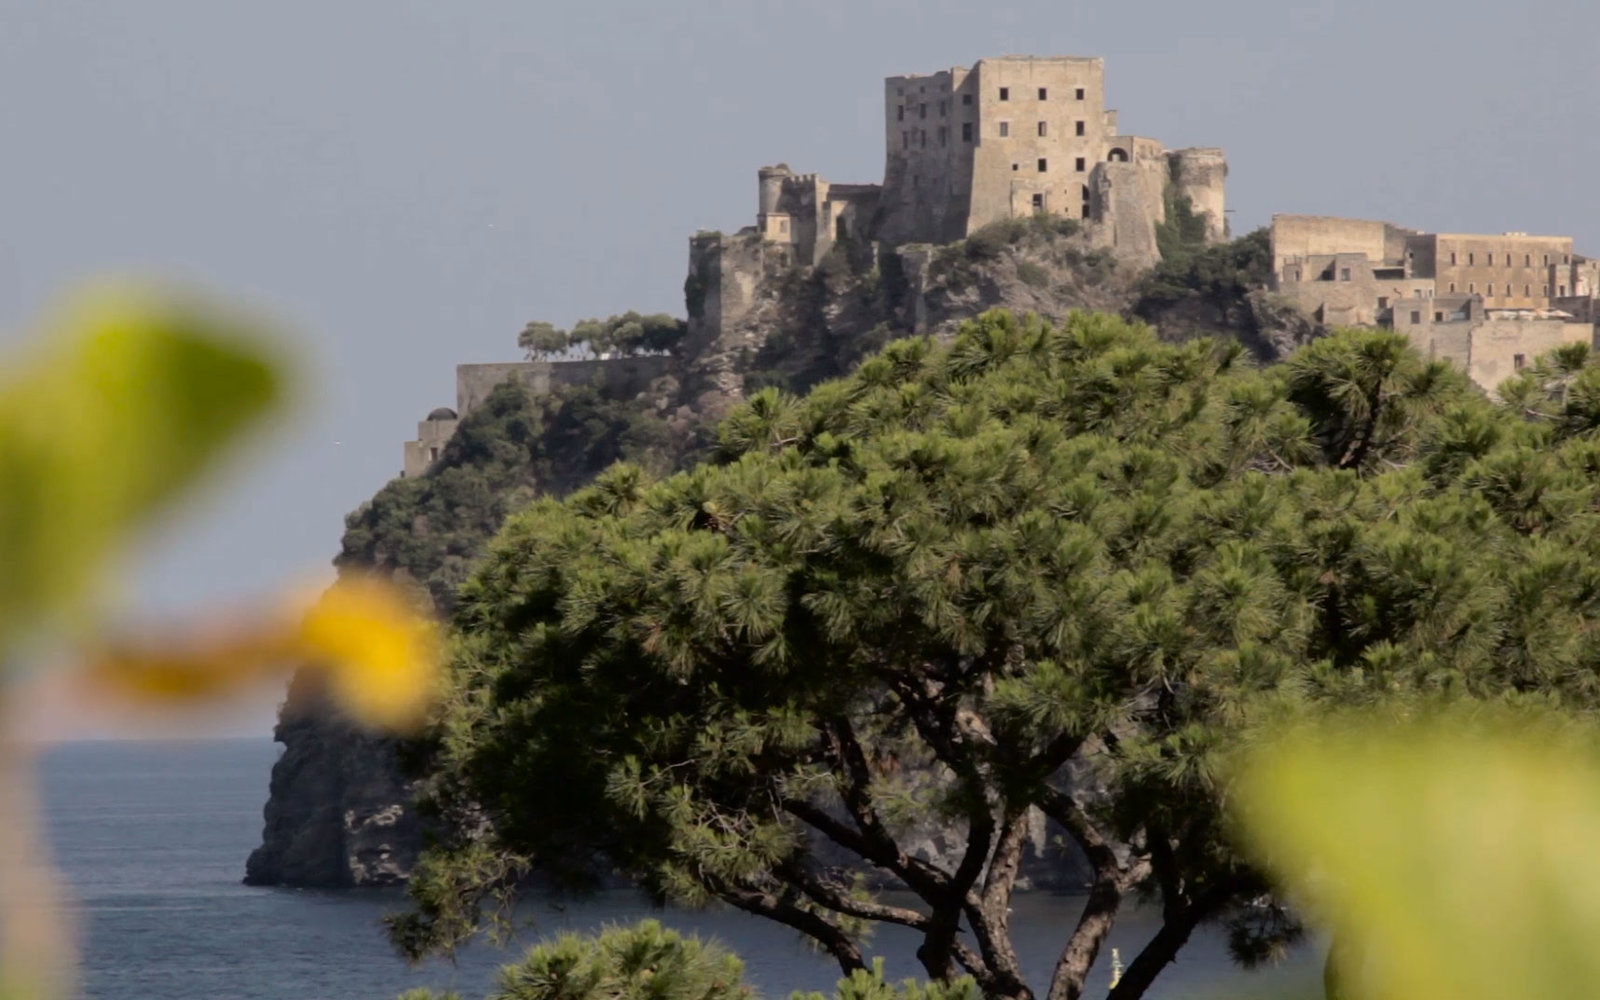 VIDEO: Come Take a Tour of Ischia, Italy